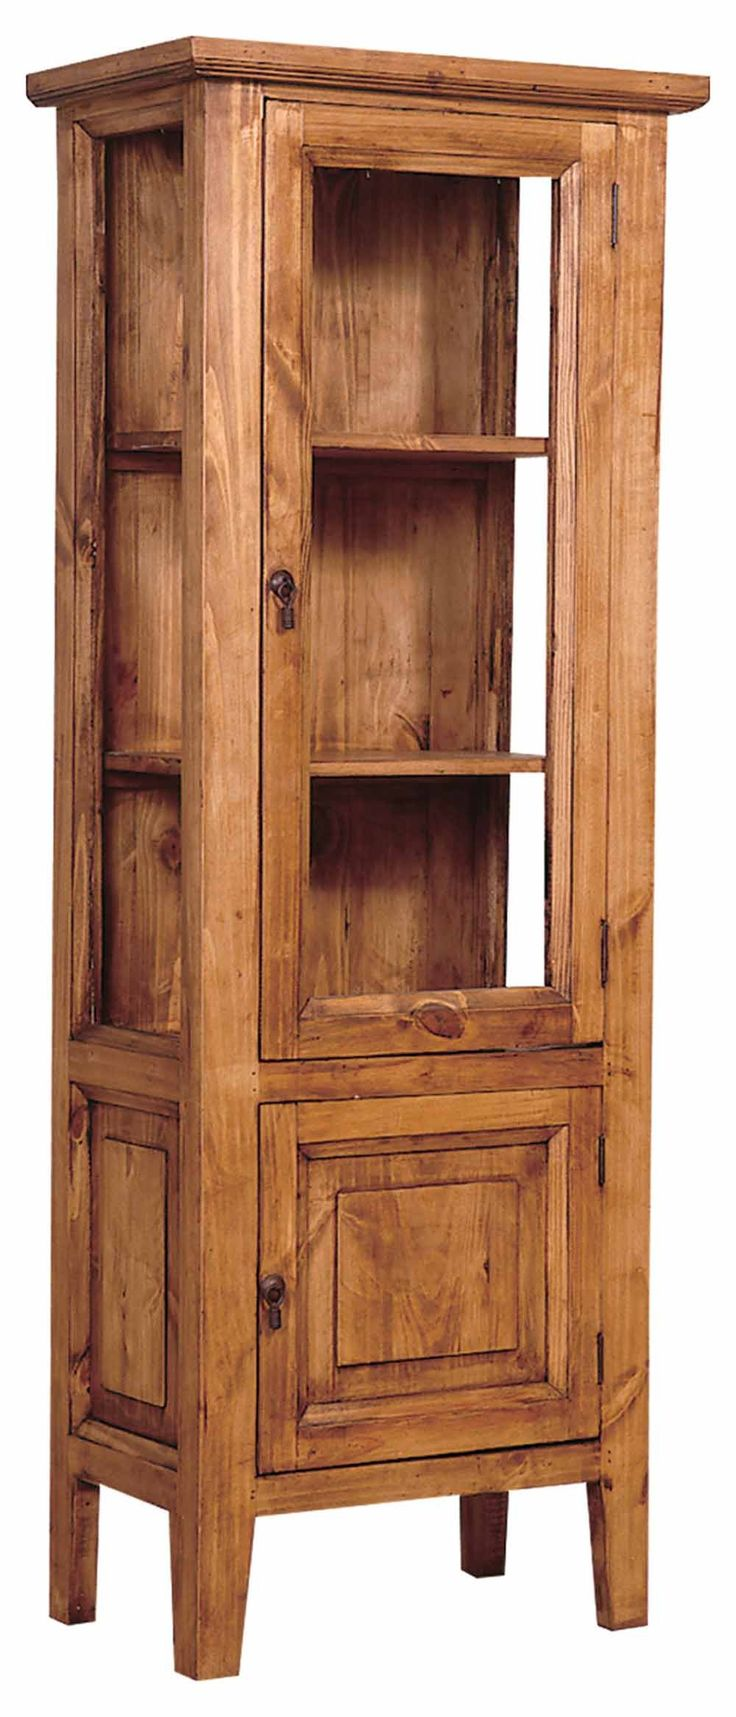 rustic glass cabinet | Rustic Pine Curio Cabinet Dining Furniture